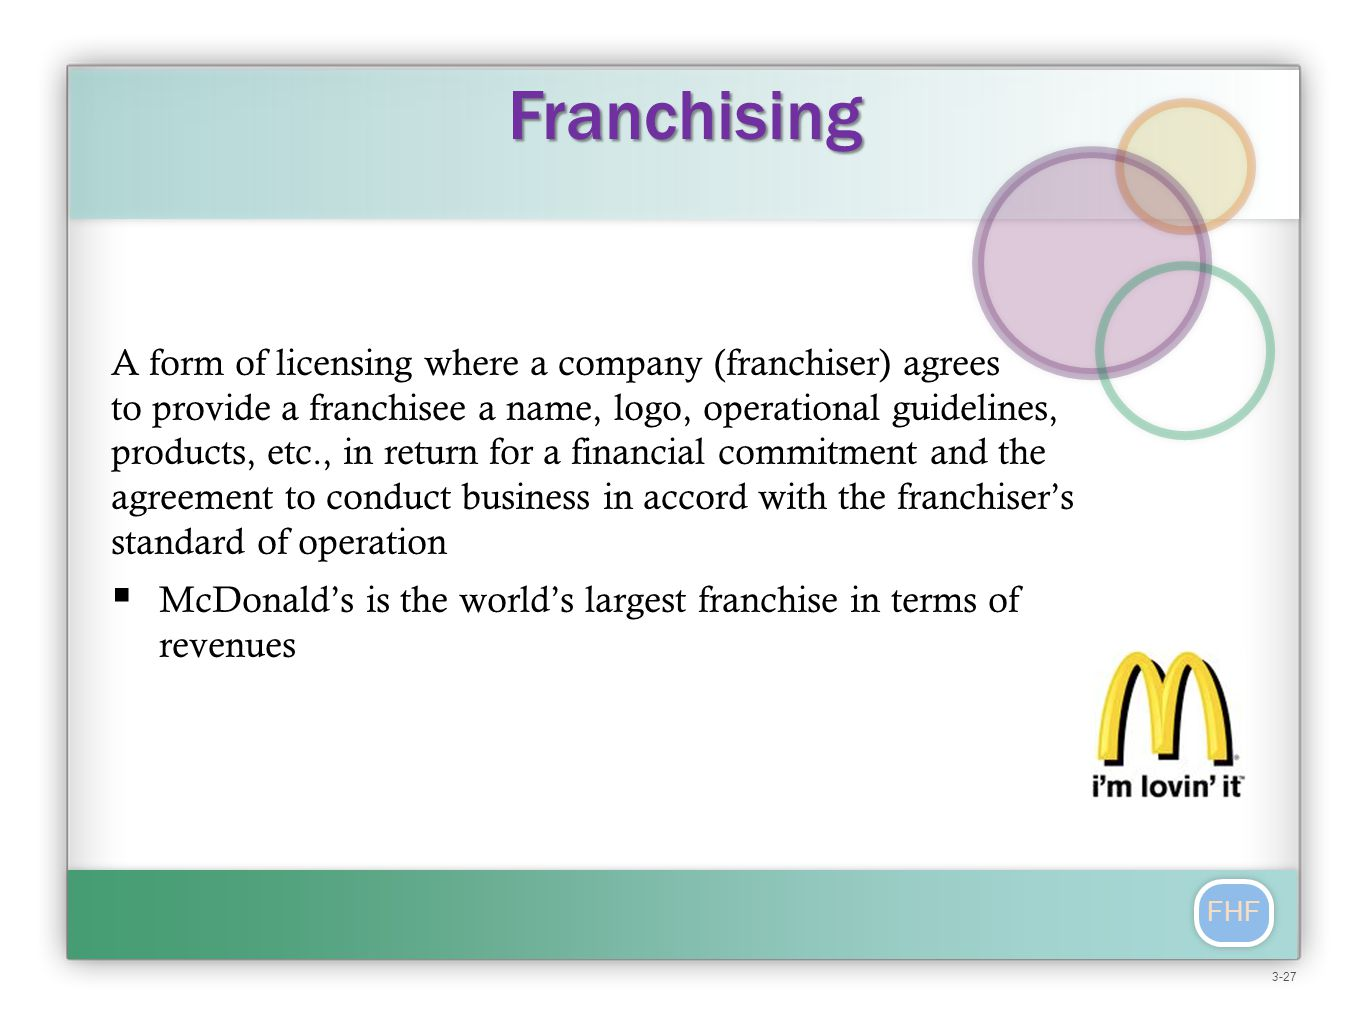 FHF A form of licensing where a company (franchiser) agrees to provide a franchisee a name, logo, operational guidelines, products, etc., in return for a financial commitment and the agreement to conduct business in accord with the franchiser's standard of operation  McDonald's is the world's largest franchise in terms of revenues Franchising 3-27